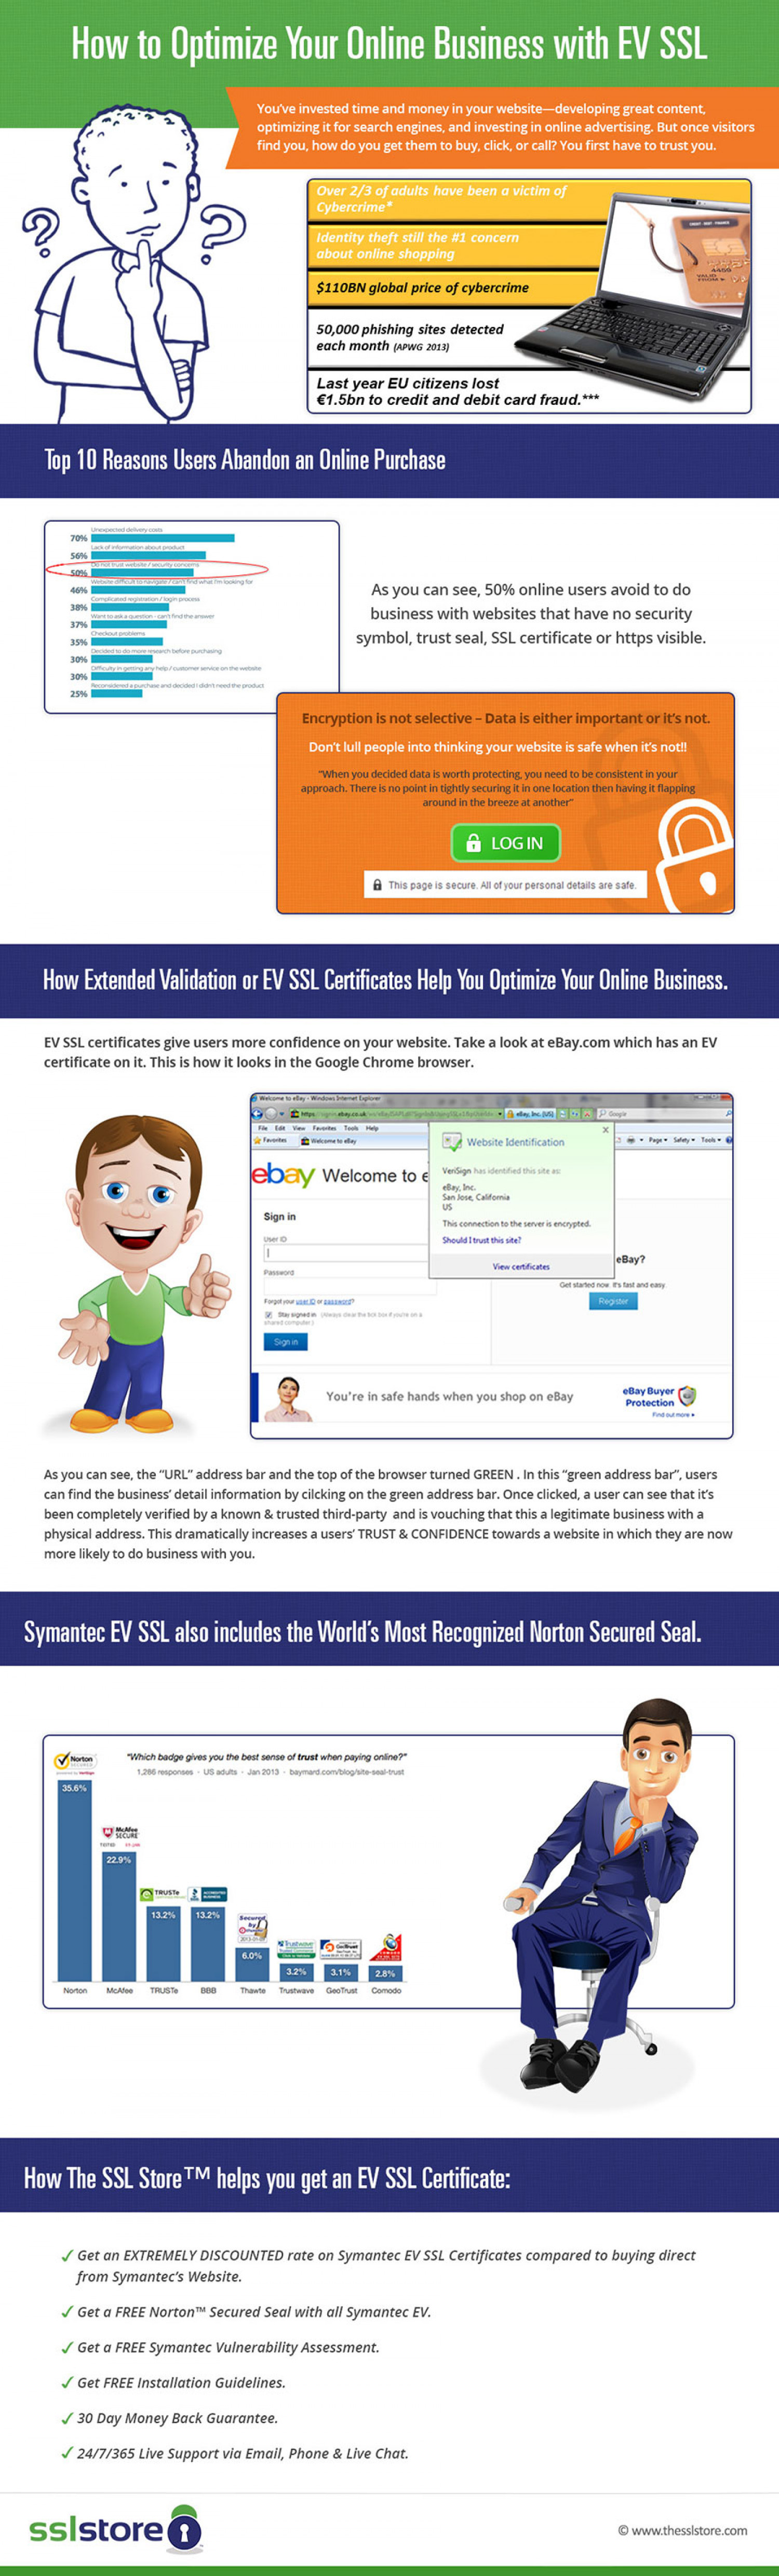 How to Optimize Your Online Business with EV SSL Infographic